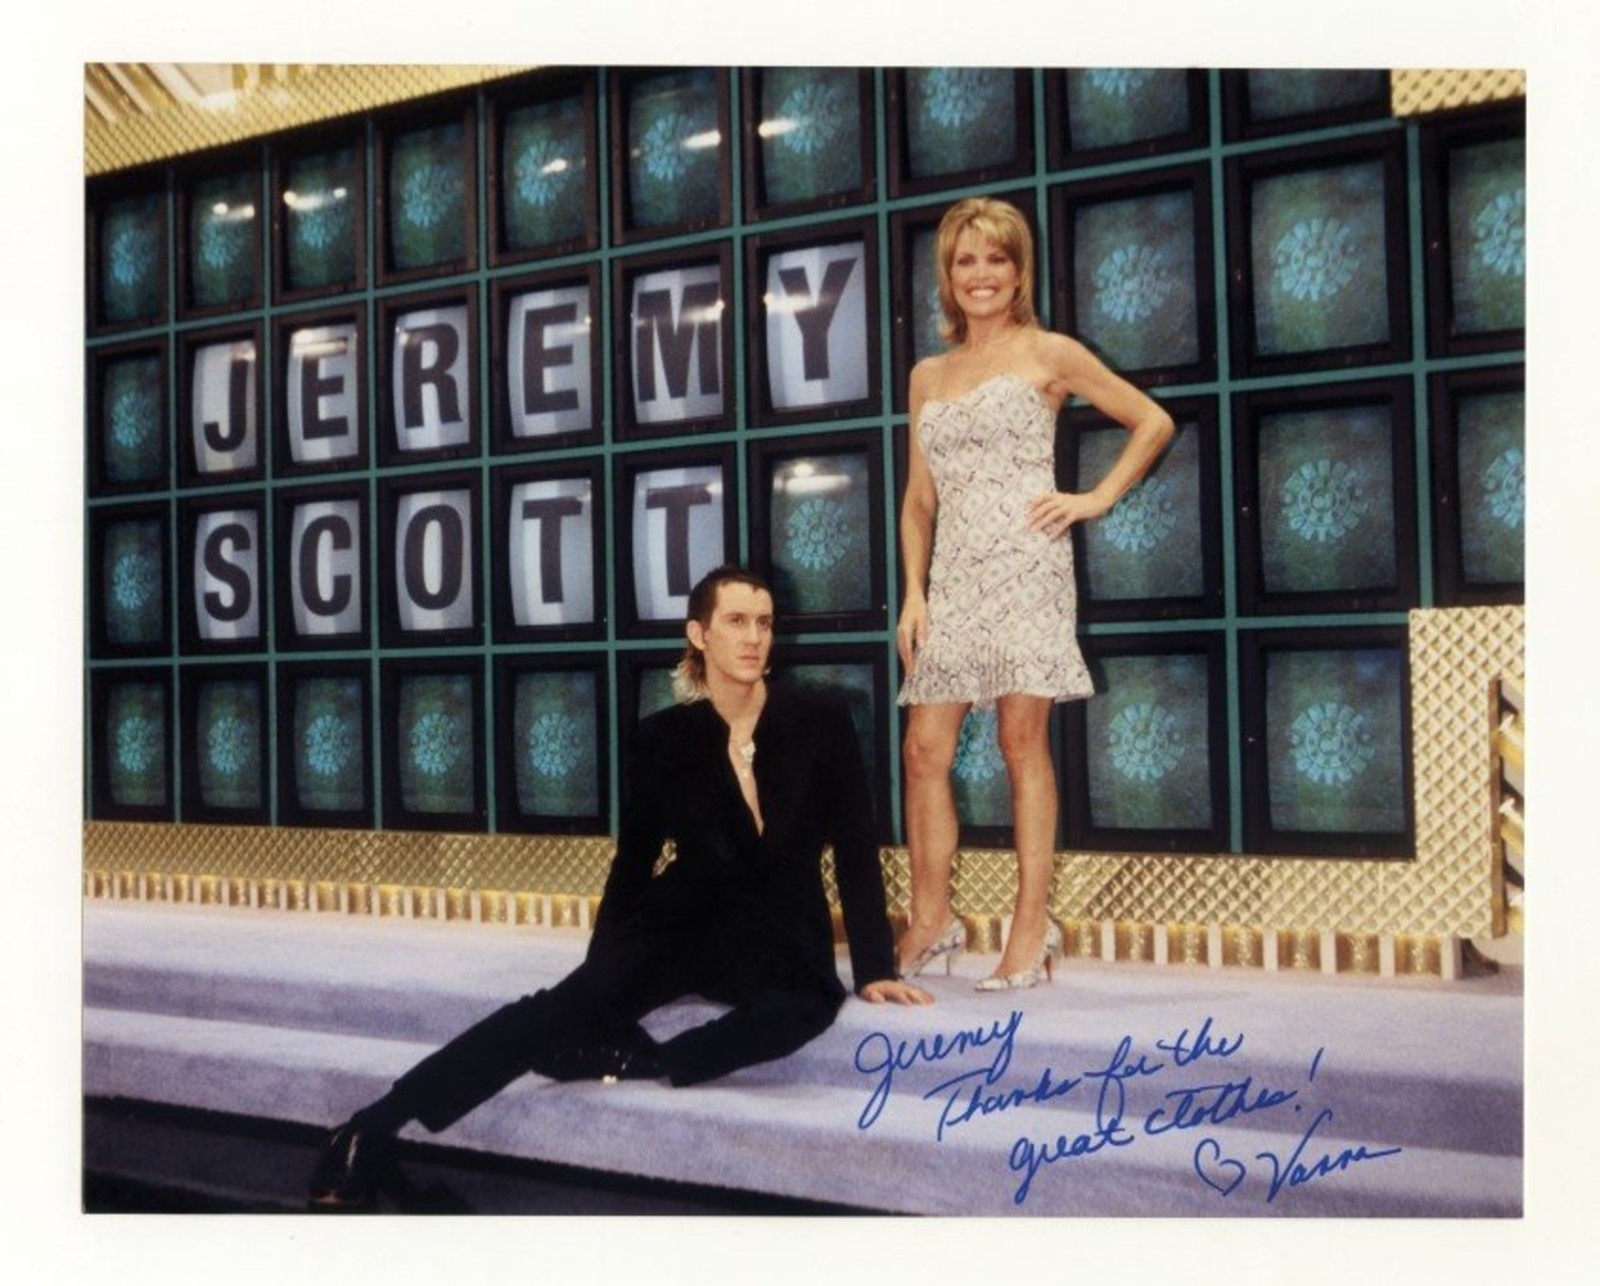 Jeremy Scott with Vanna White, 2001